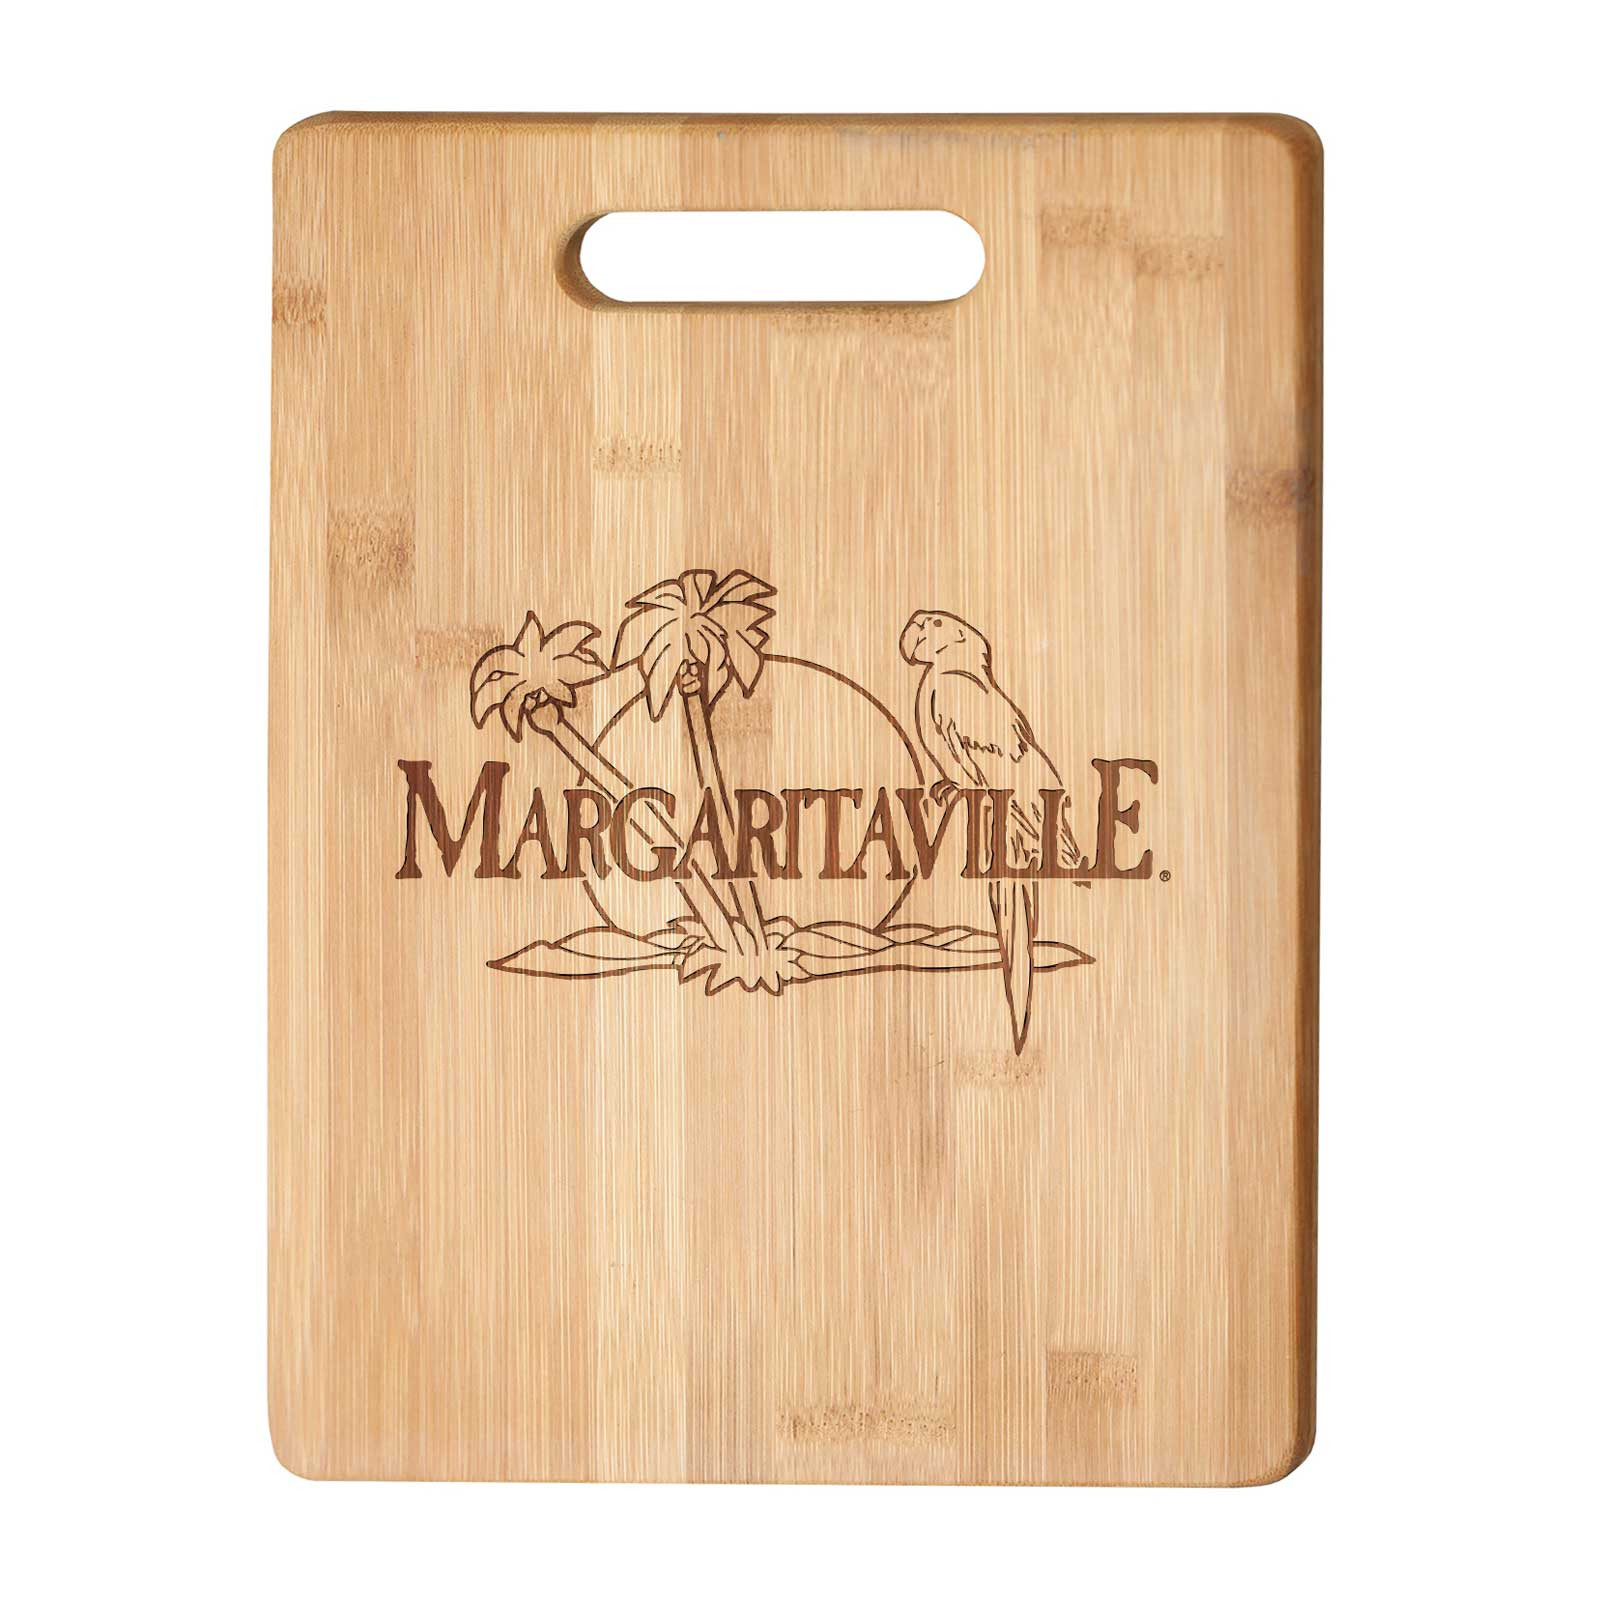 MGV PARROT CUT BOARD W/ HANDLE